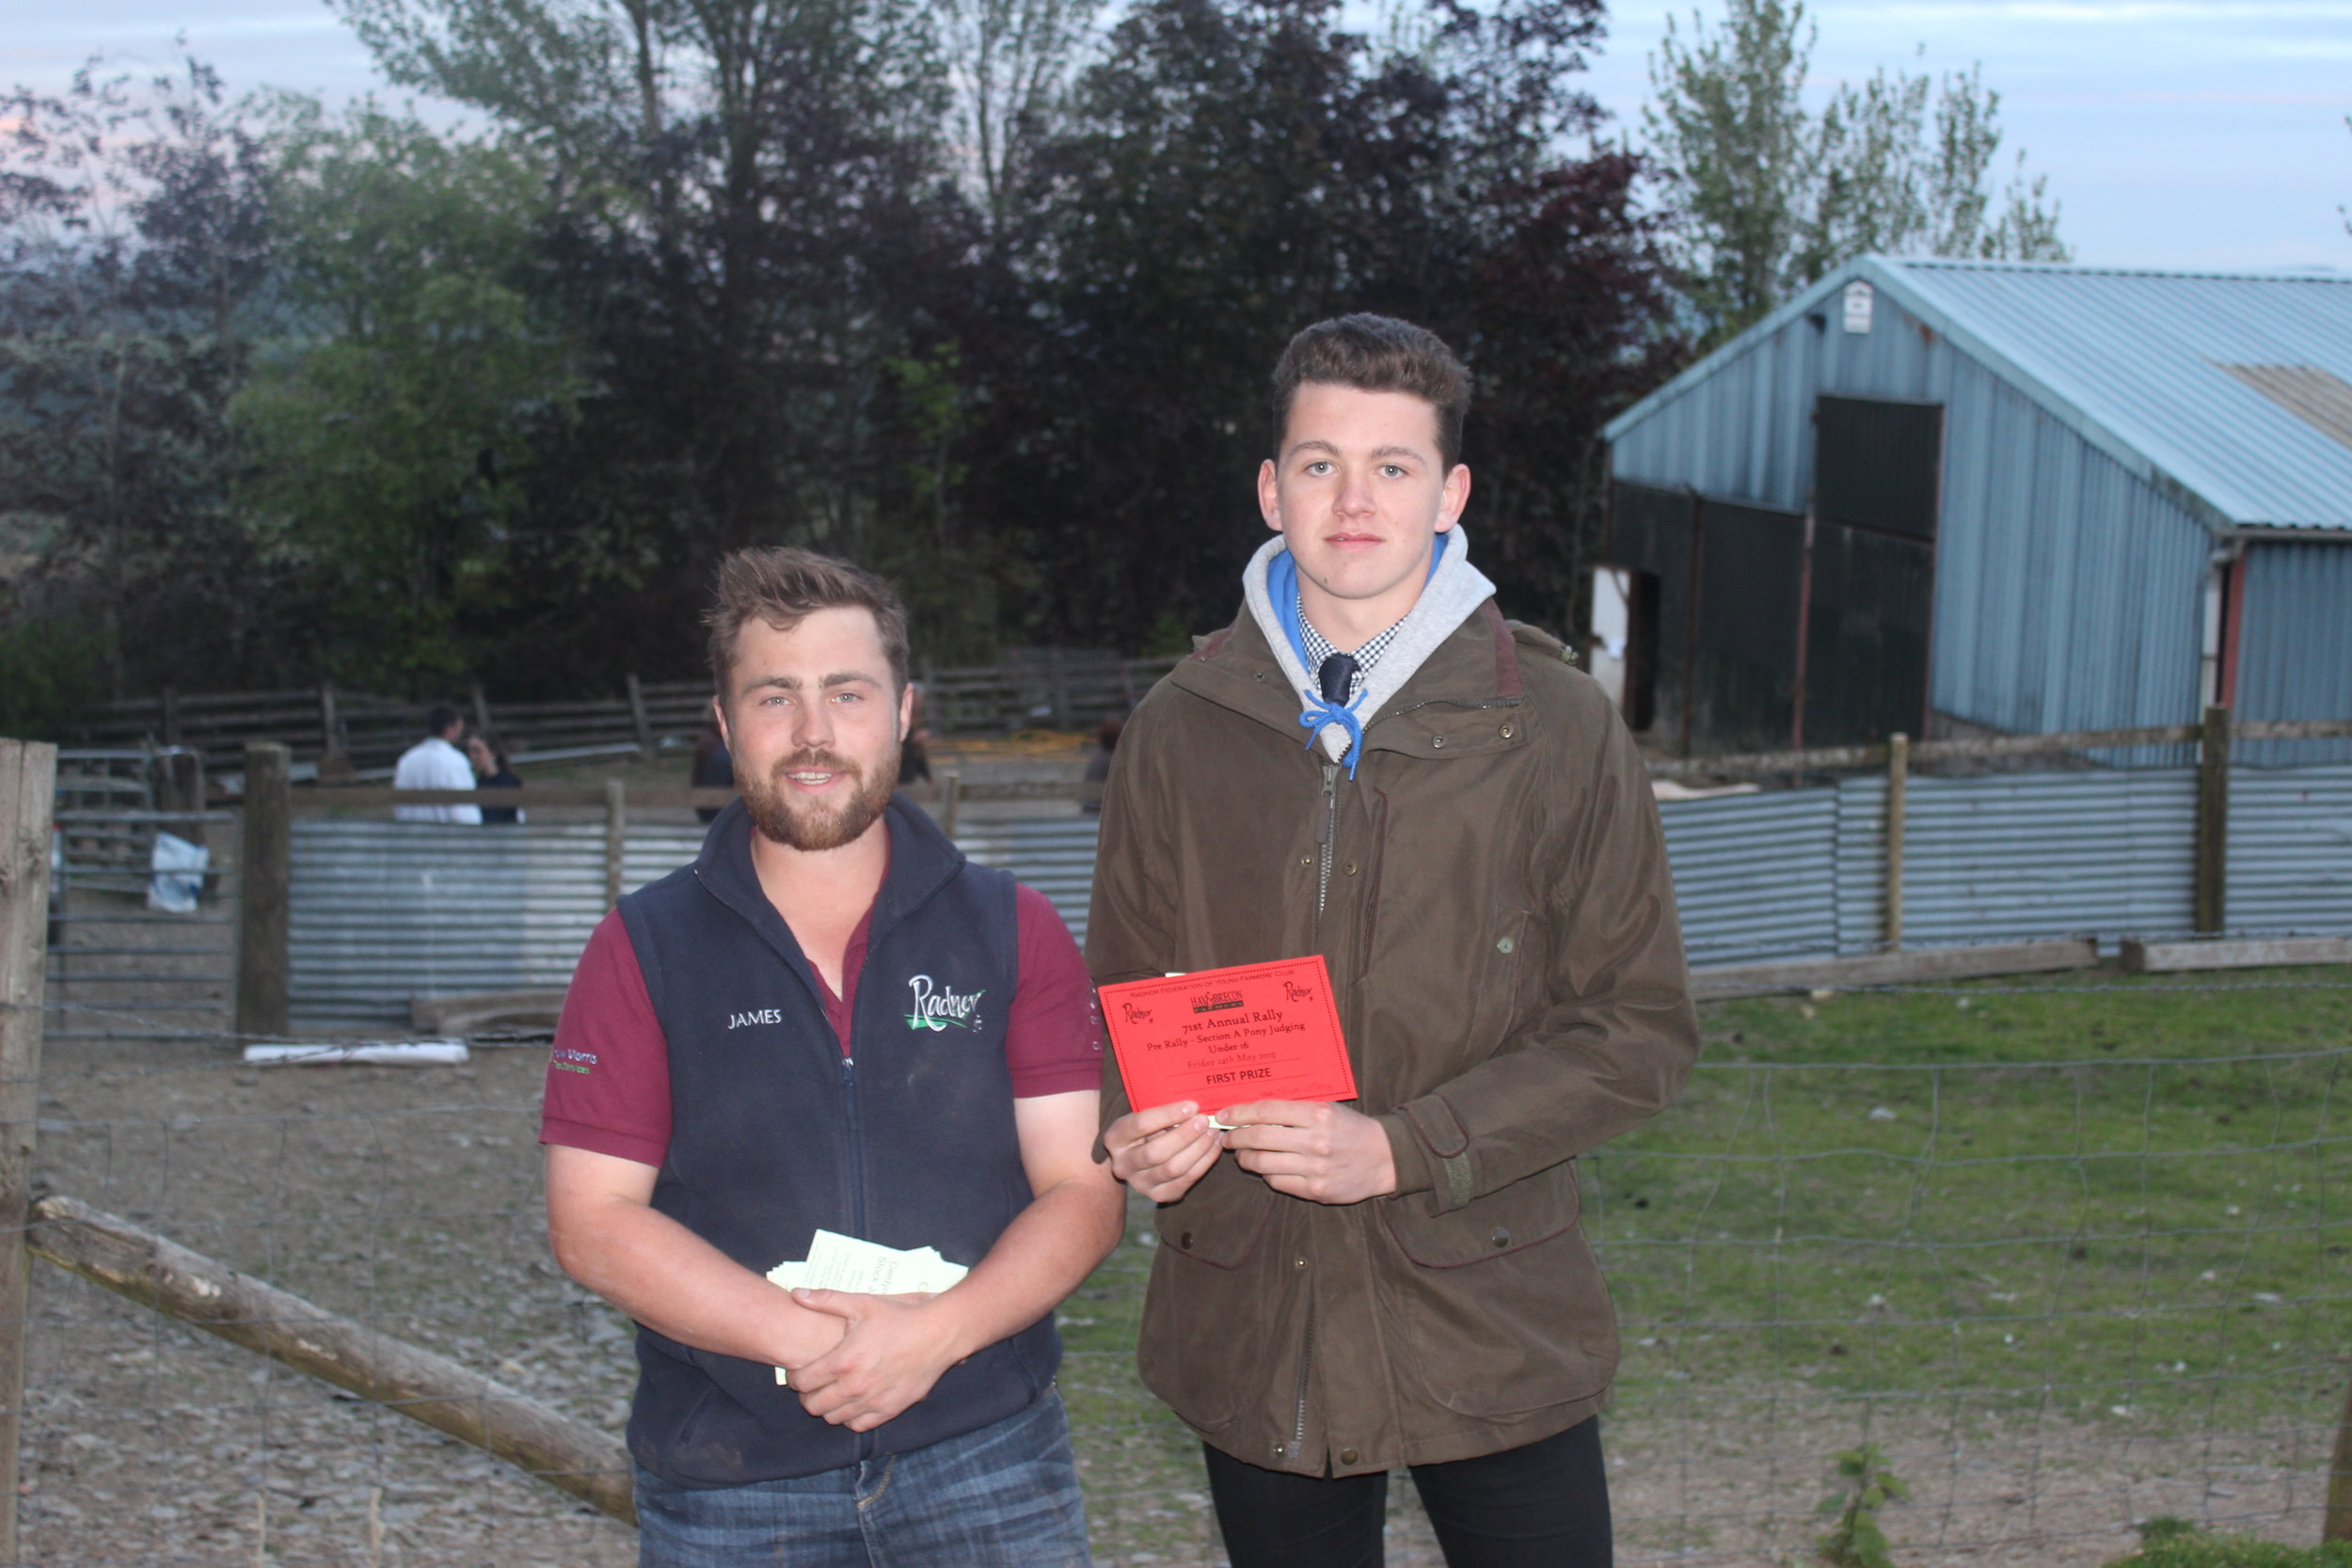 Josh Deakins, Teme Valley YFC - 1st place in the Under 16 Section A Stockjudging with County Chairman James Poulton.